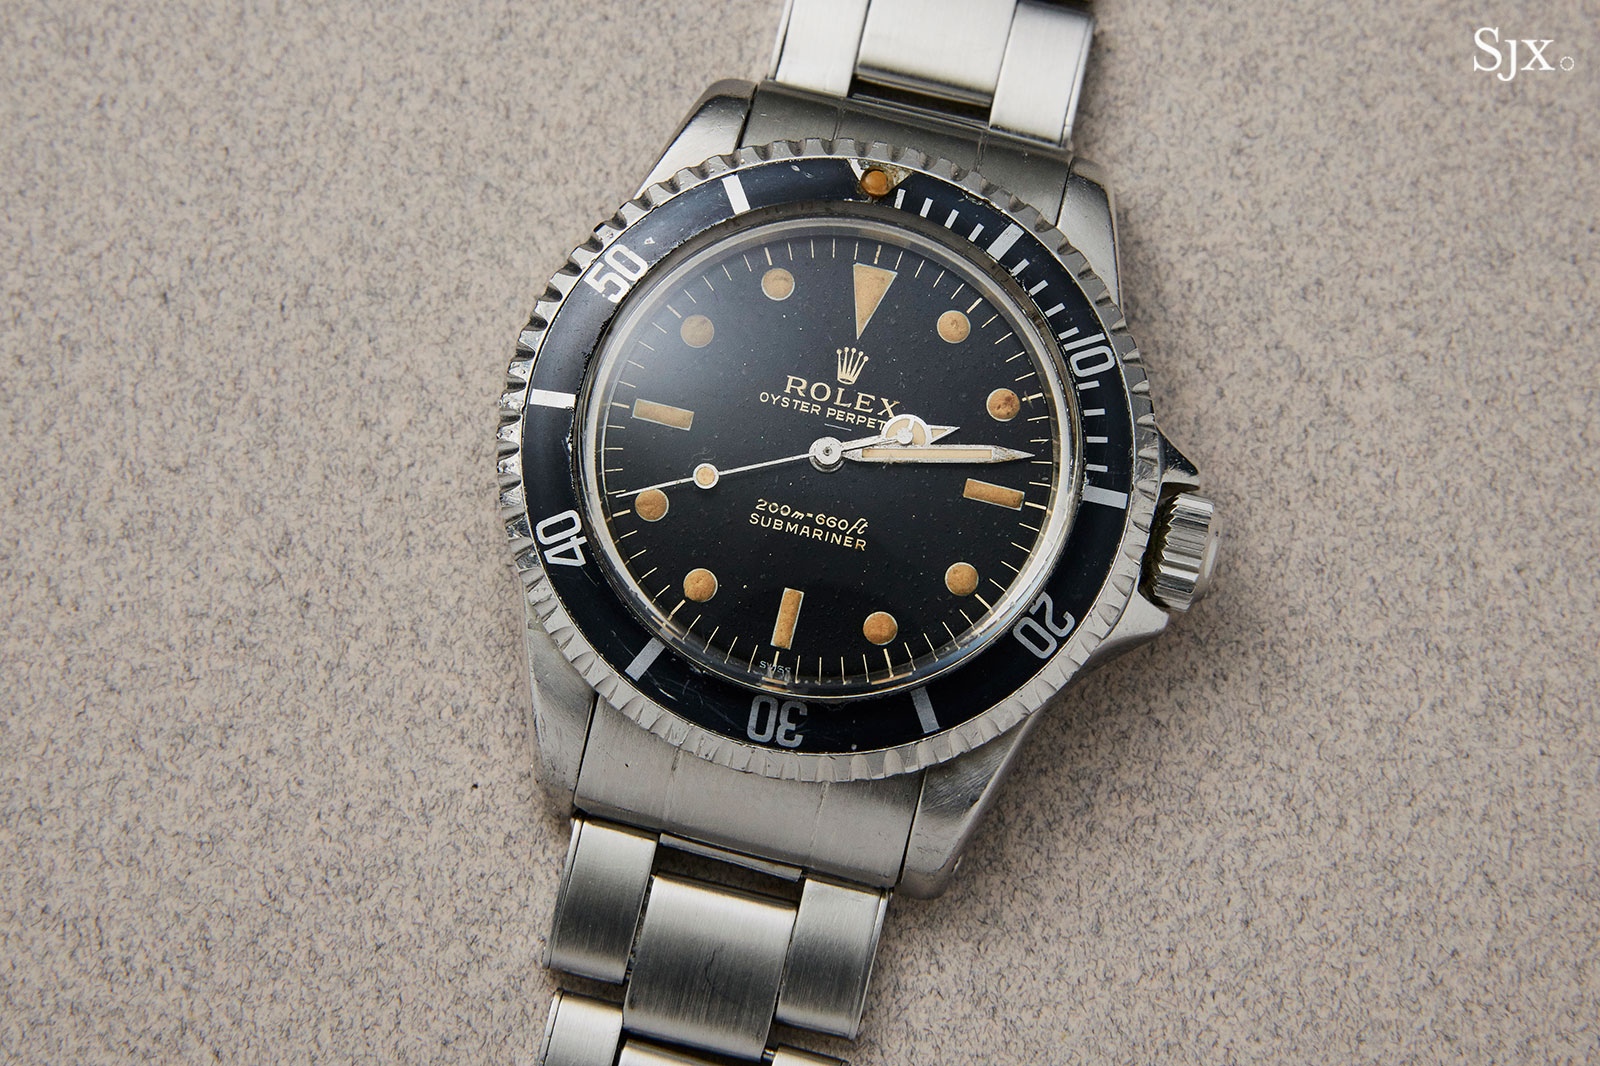 Rolex Submariner 5513 underline 2